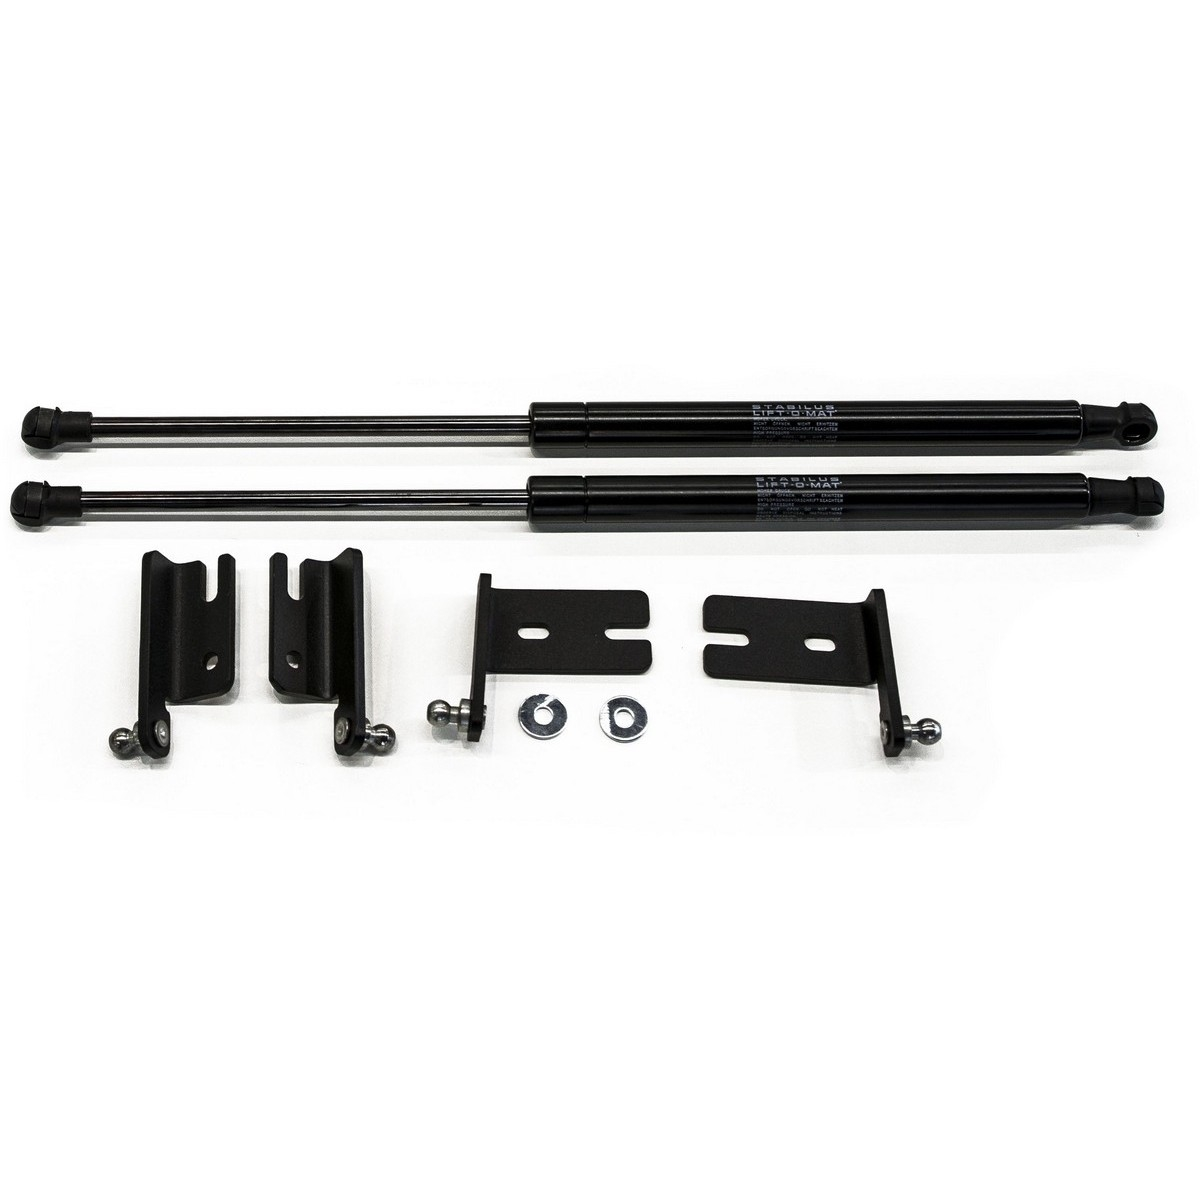 Hood shock absorber Rival A.ST.4703.1 rfy motorcycle air suspension rear shock absorber black 2 pcs